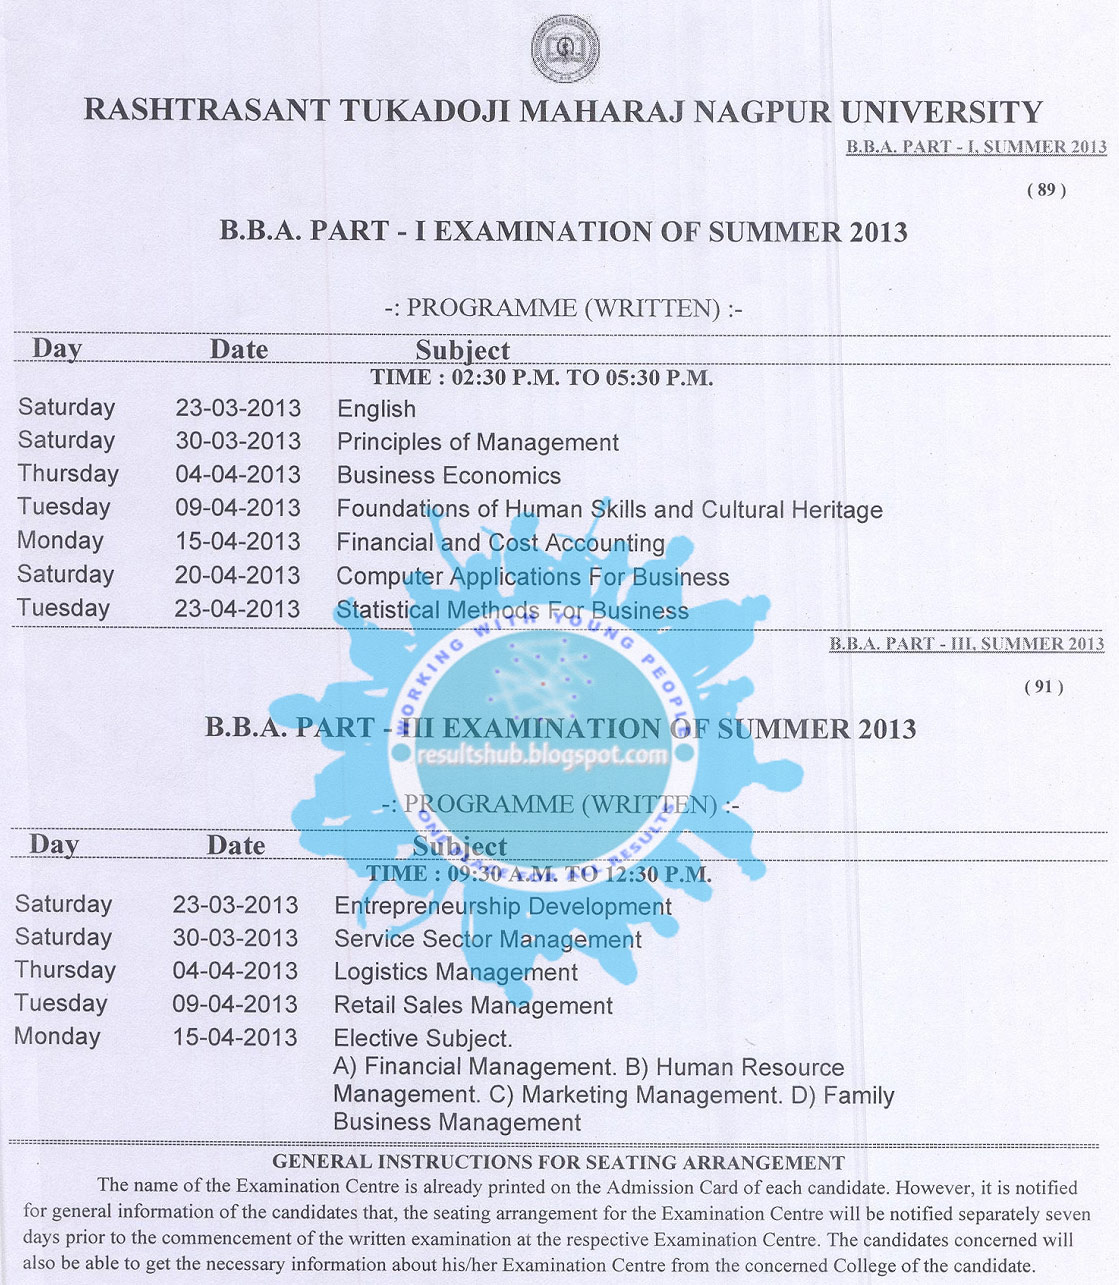 University bba part 1 final year summer 2013 timetable nagpur university bba part 1 final year summer 2013 timetable yadclub Gallery